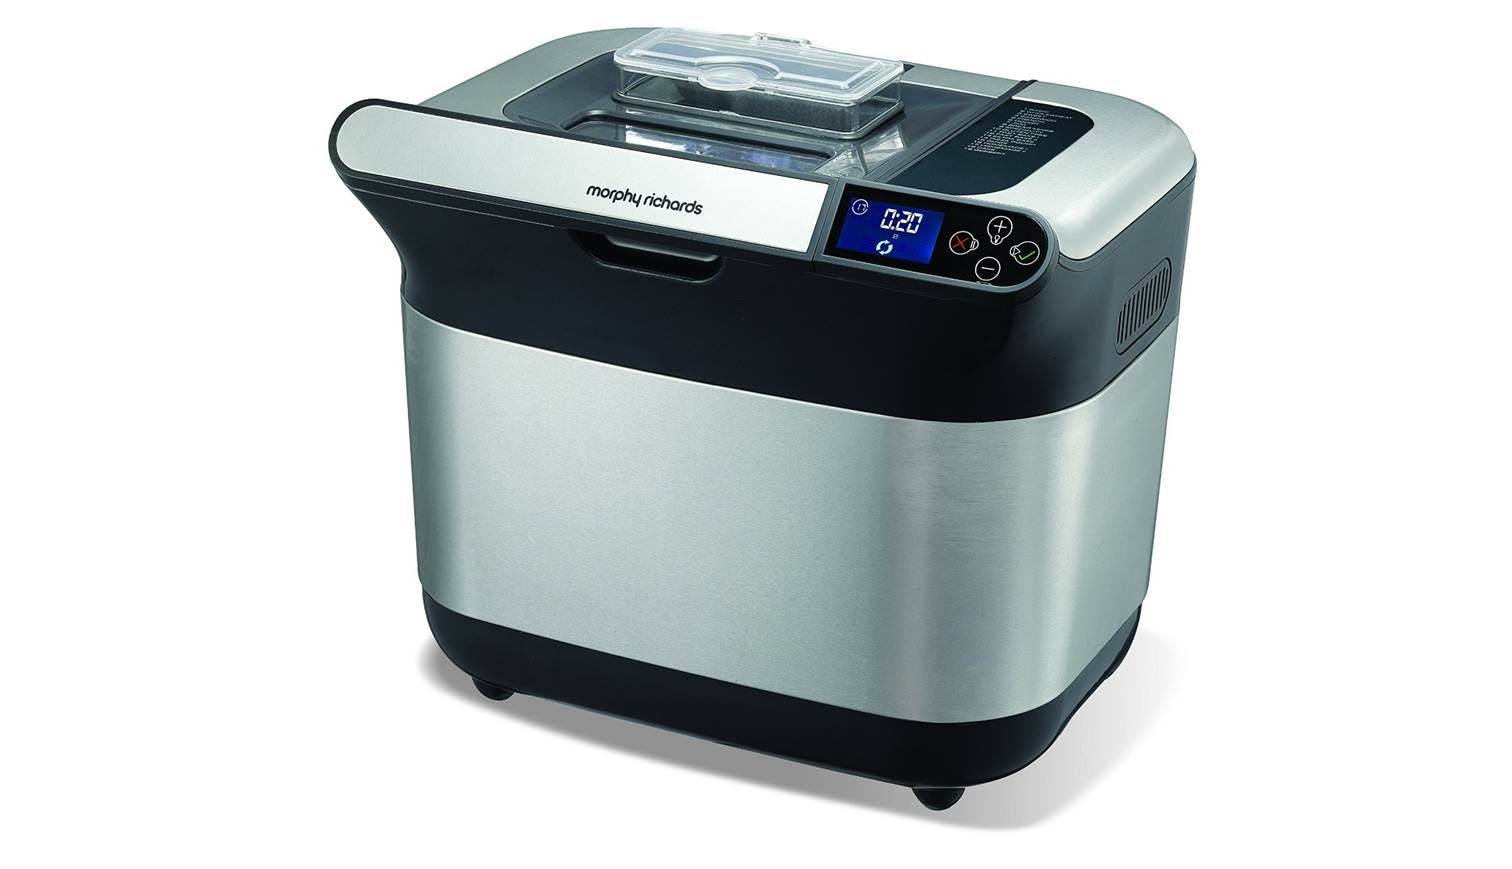 Morphy richards breadmaker 48319